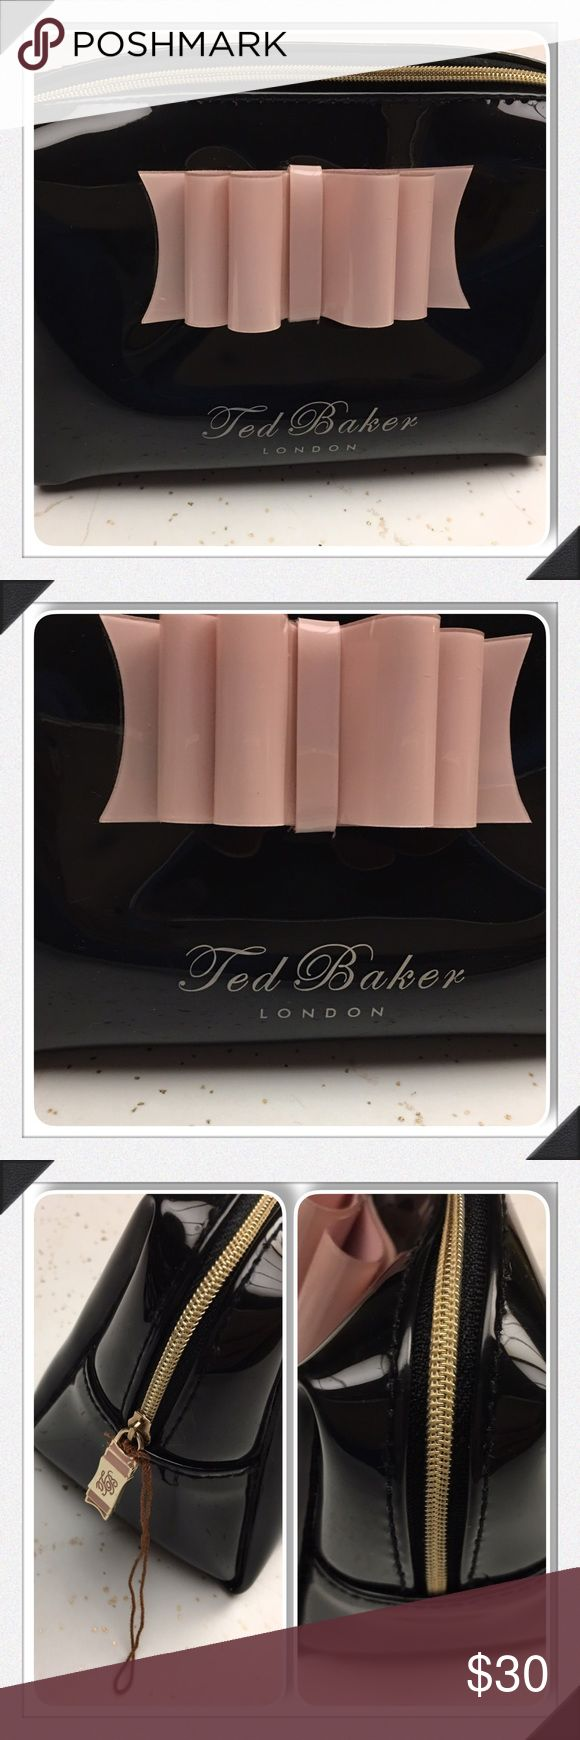 "Ted Baker Black Vinyl Pink Bow Cosmetic Wash Bag Ted Baker Black Patent w/pink bow  New without tags  Measurements: 4 1/2 H x 6 3/4"" L Ted Baker London Bags Cosmetic Bags & Cases"